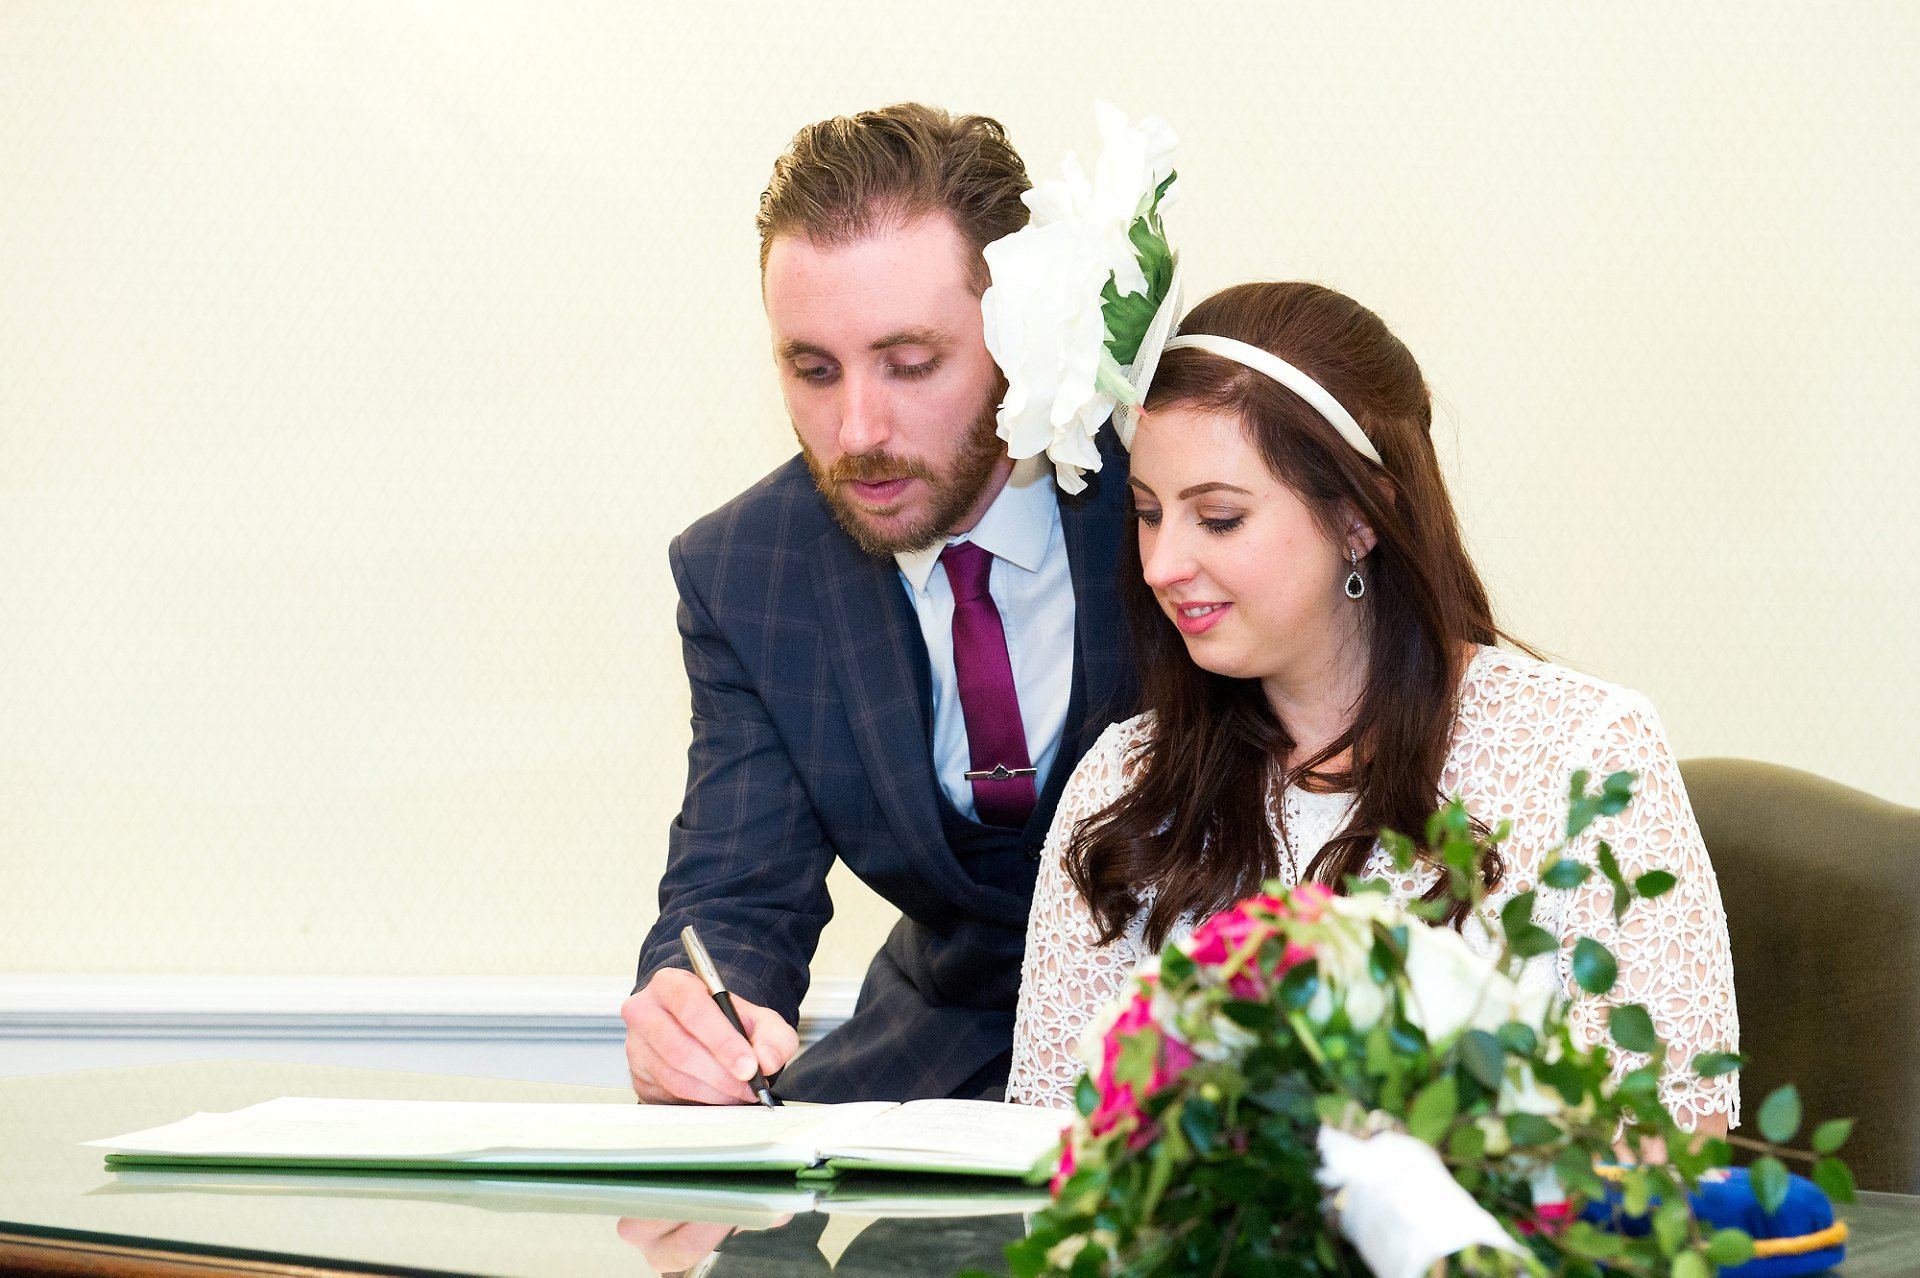 A bride and groom register their civil ceremony in Chelsea Old Town Hall's Rossetti Room